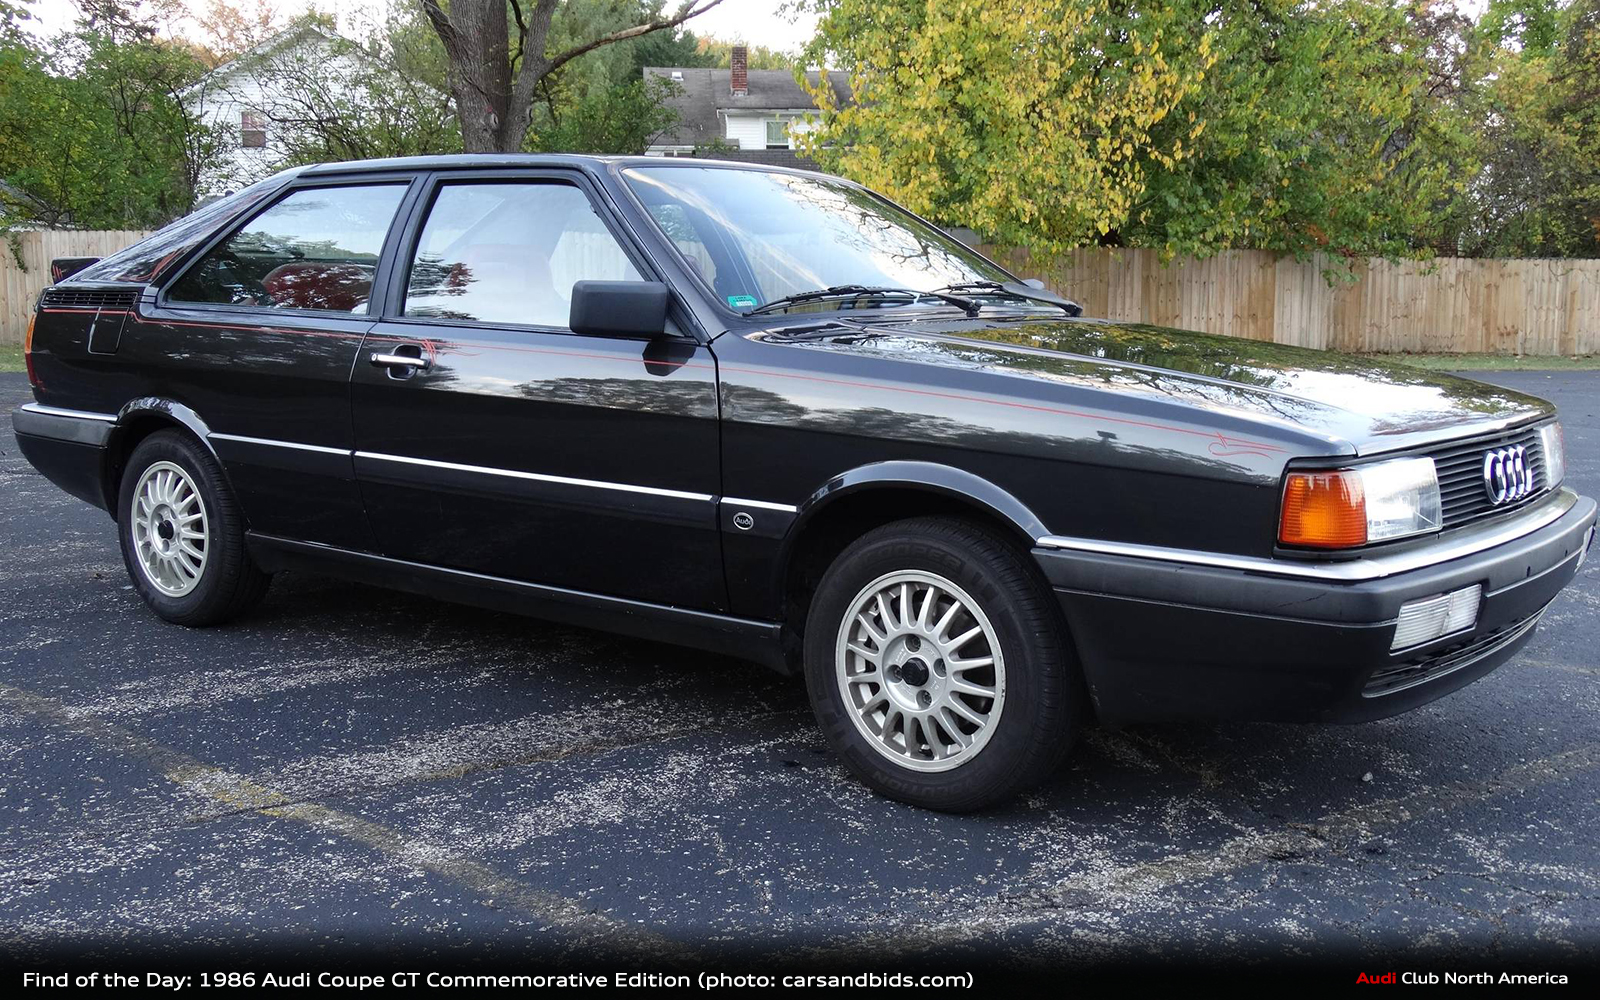 Find of the Day: 1986 Audi Coupe GT Commemorative Edition